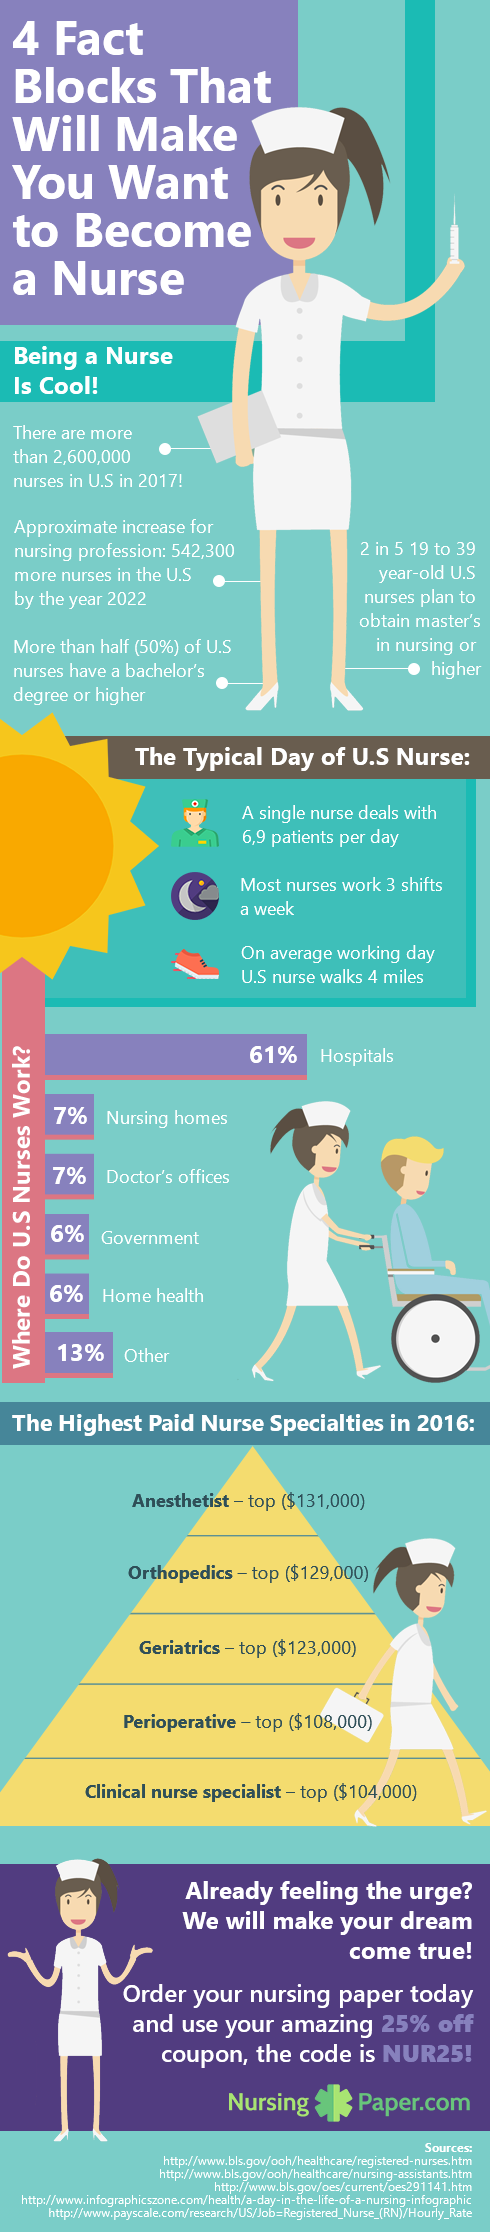 career as a nurse